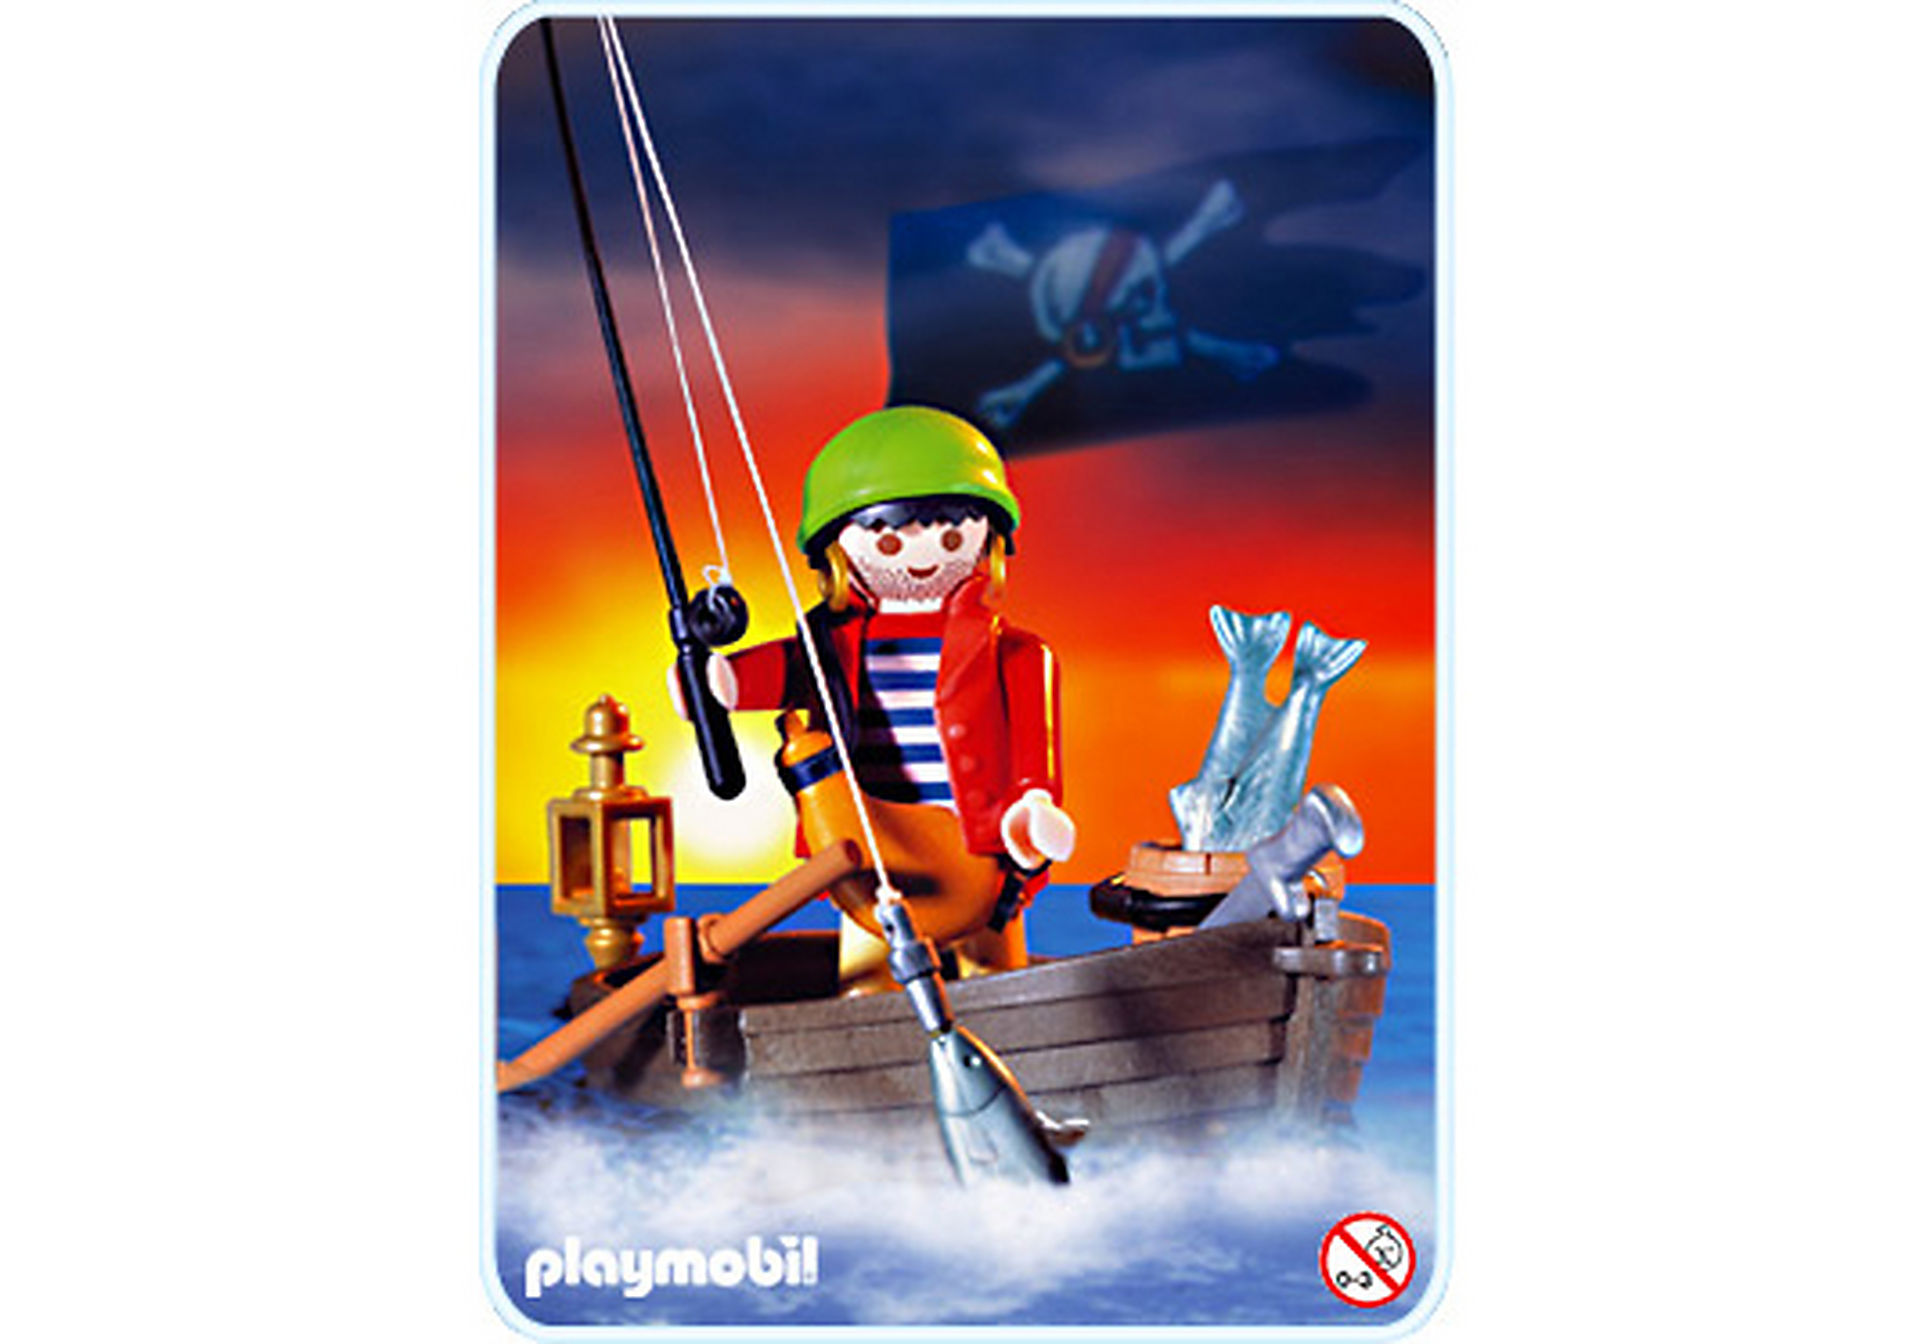 http://media.playmobil.com/i/playmobil/3937-A_product_detail/Pirate naufragé / barque